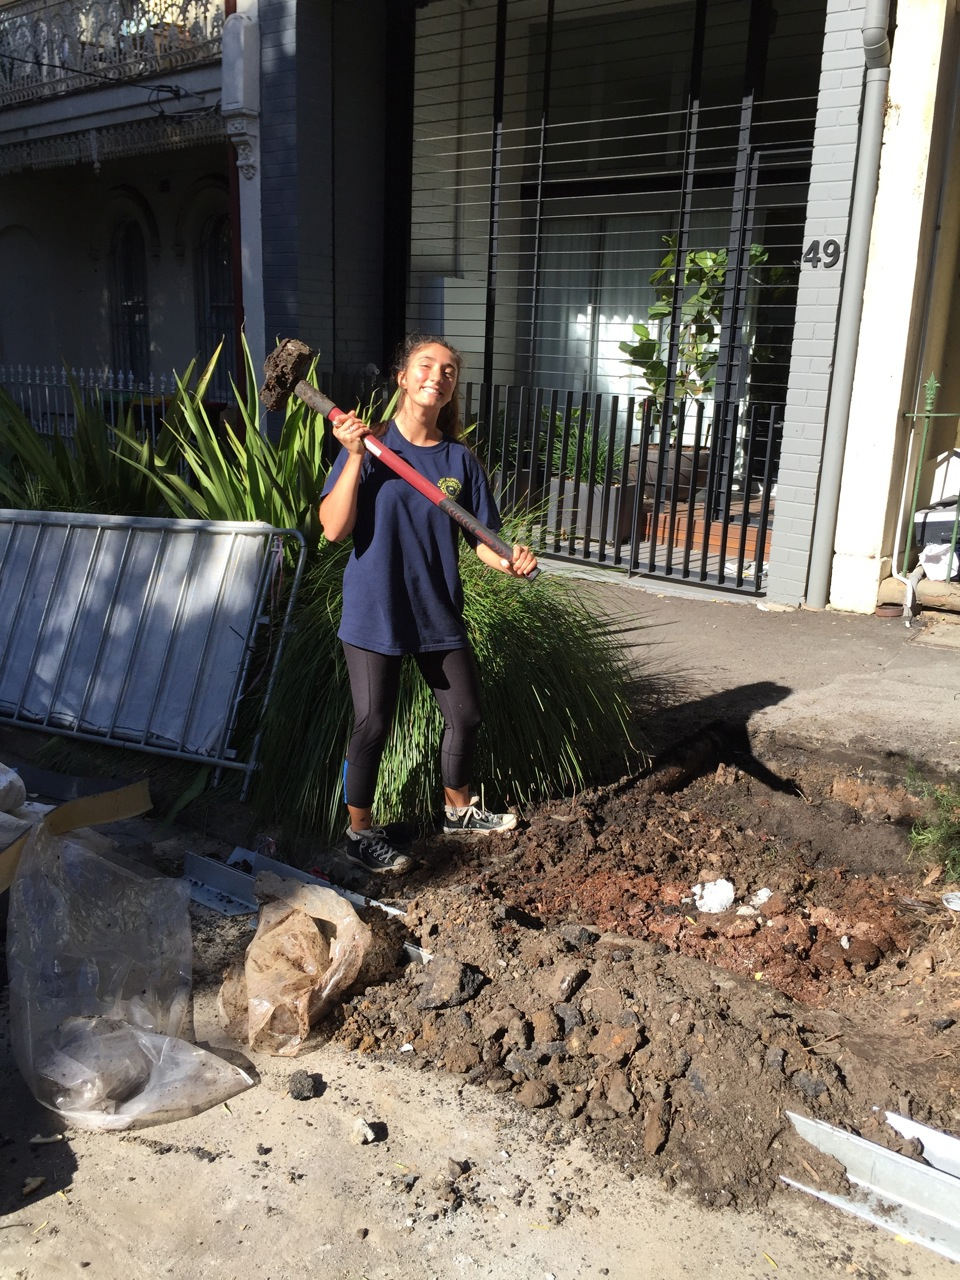 Serena with sledge hammer breaking up rocks to get a good rocky base for the lime and prevent it drowning in water.